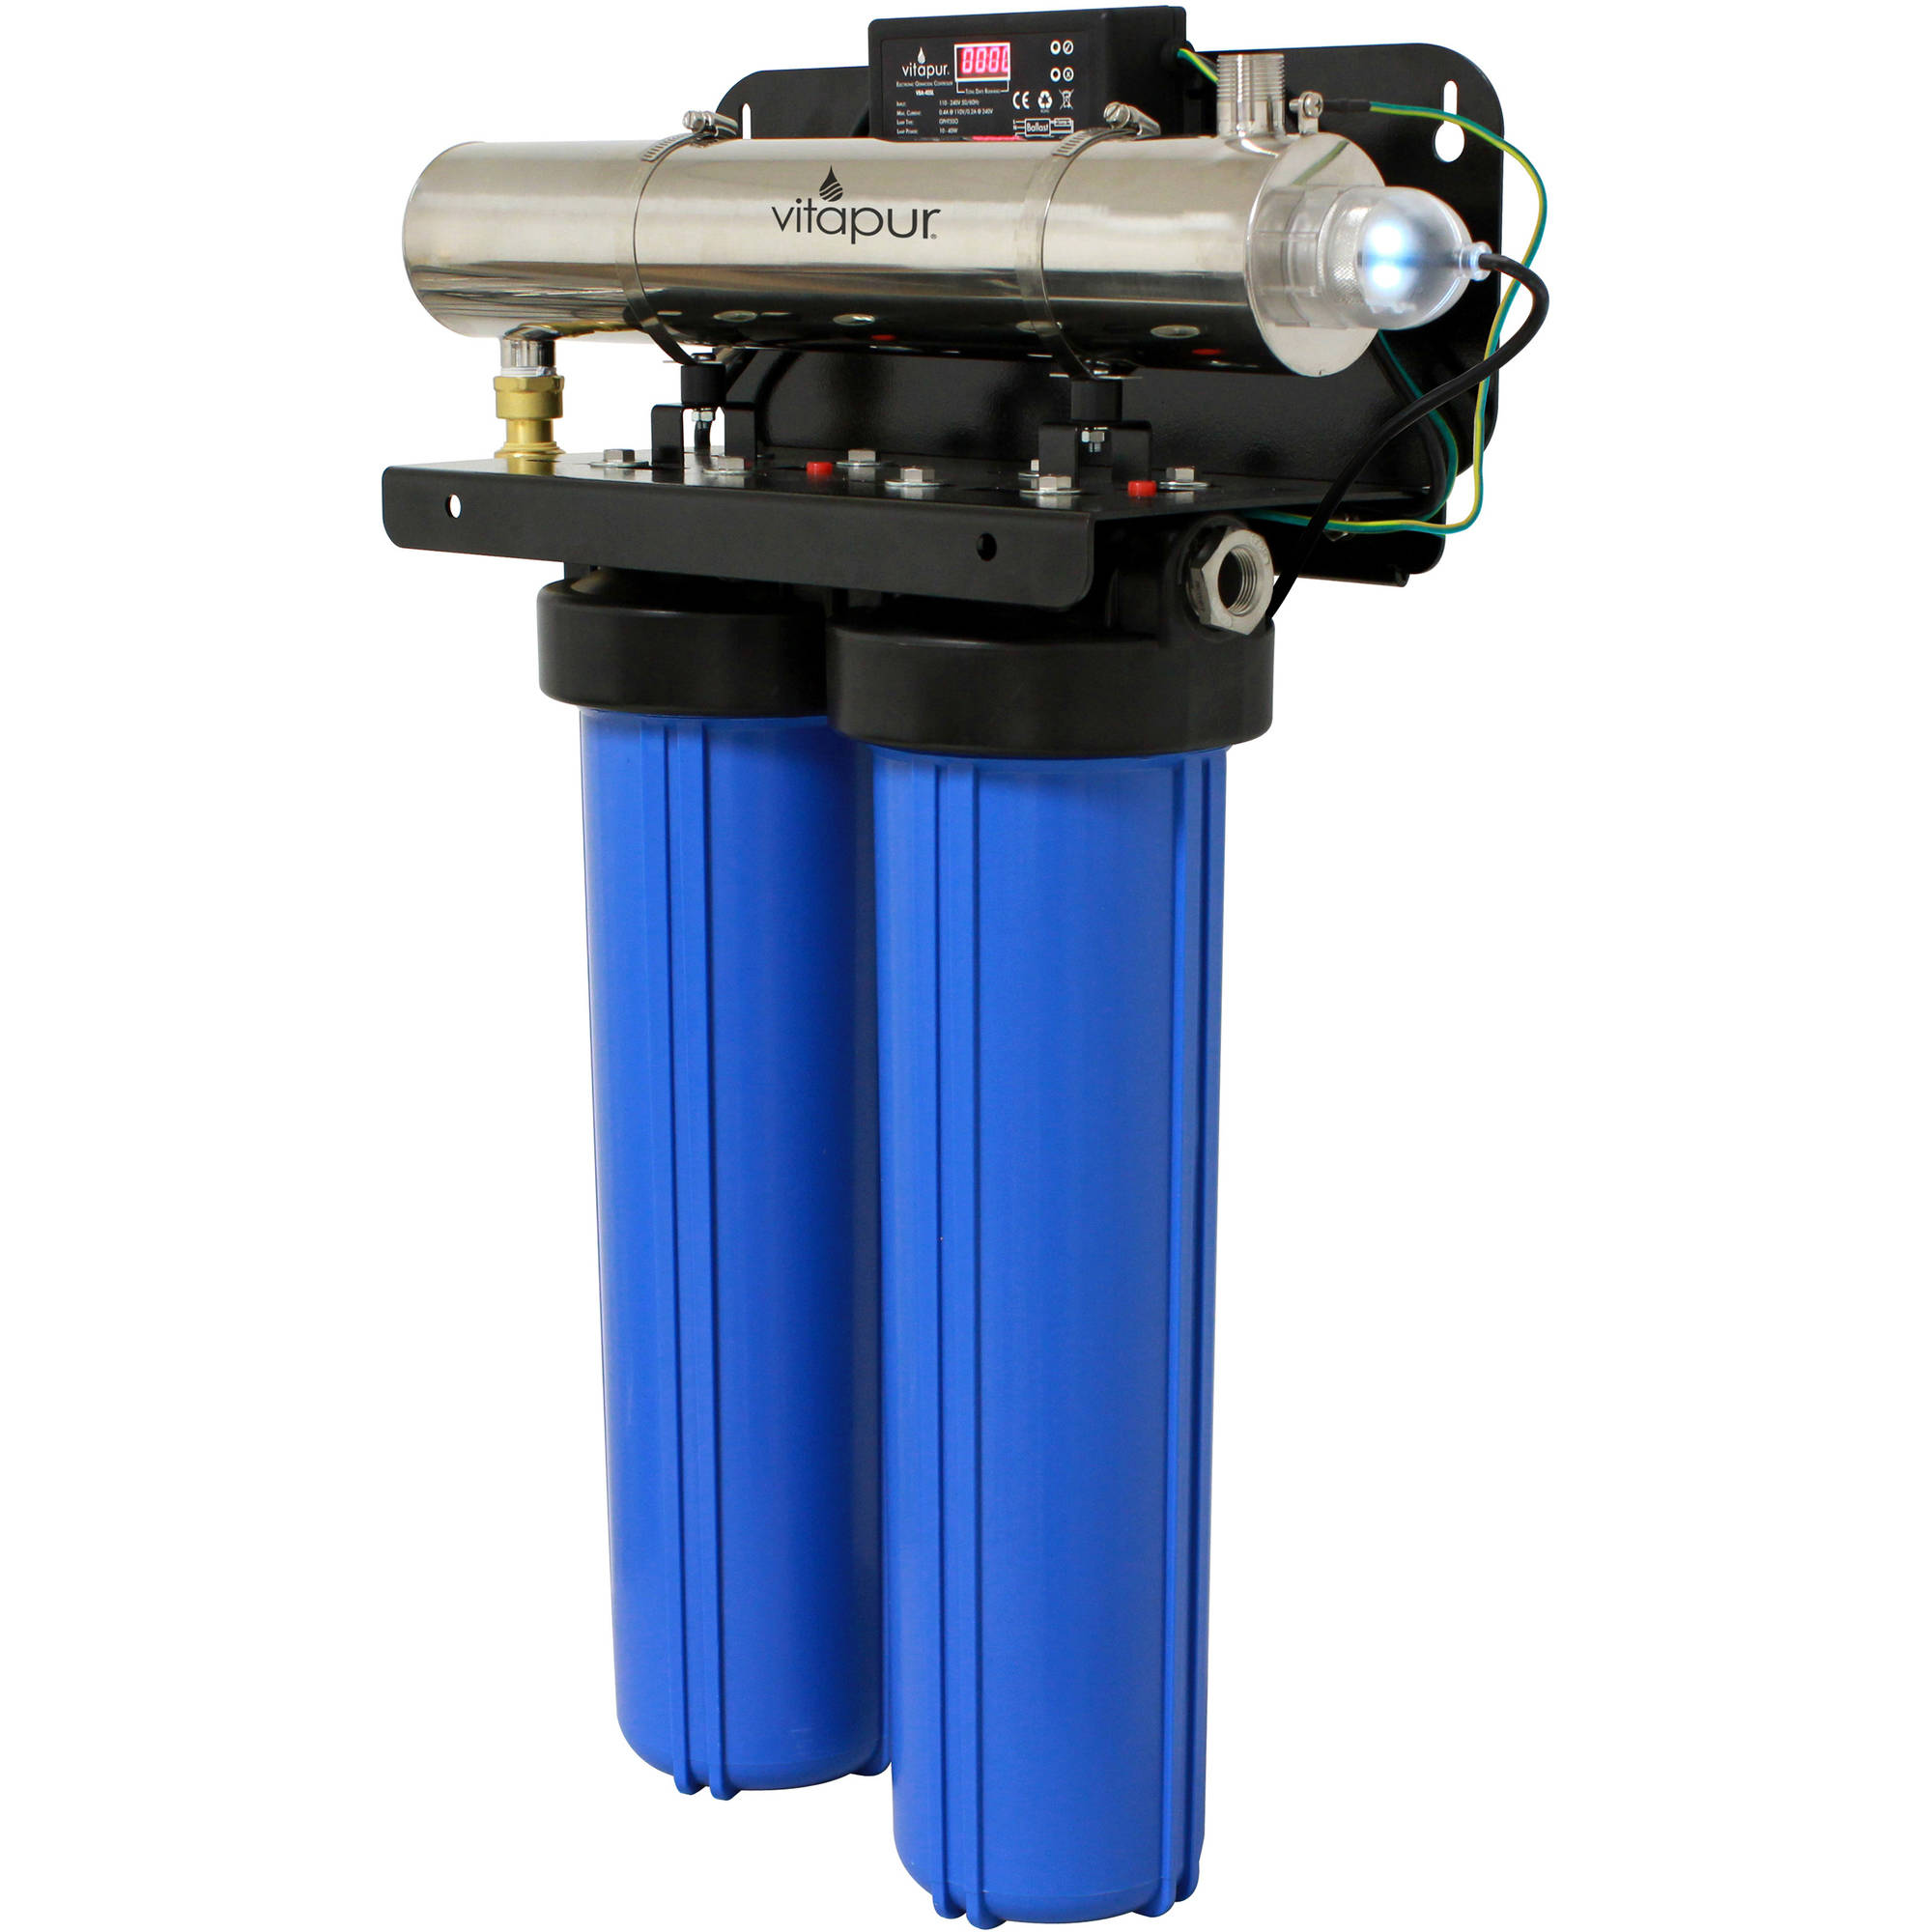 Vitapur Vps1140-1, Ultraviolet Water Disinfection and Filtration System